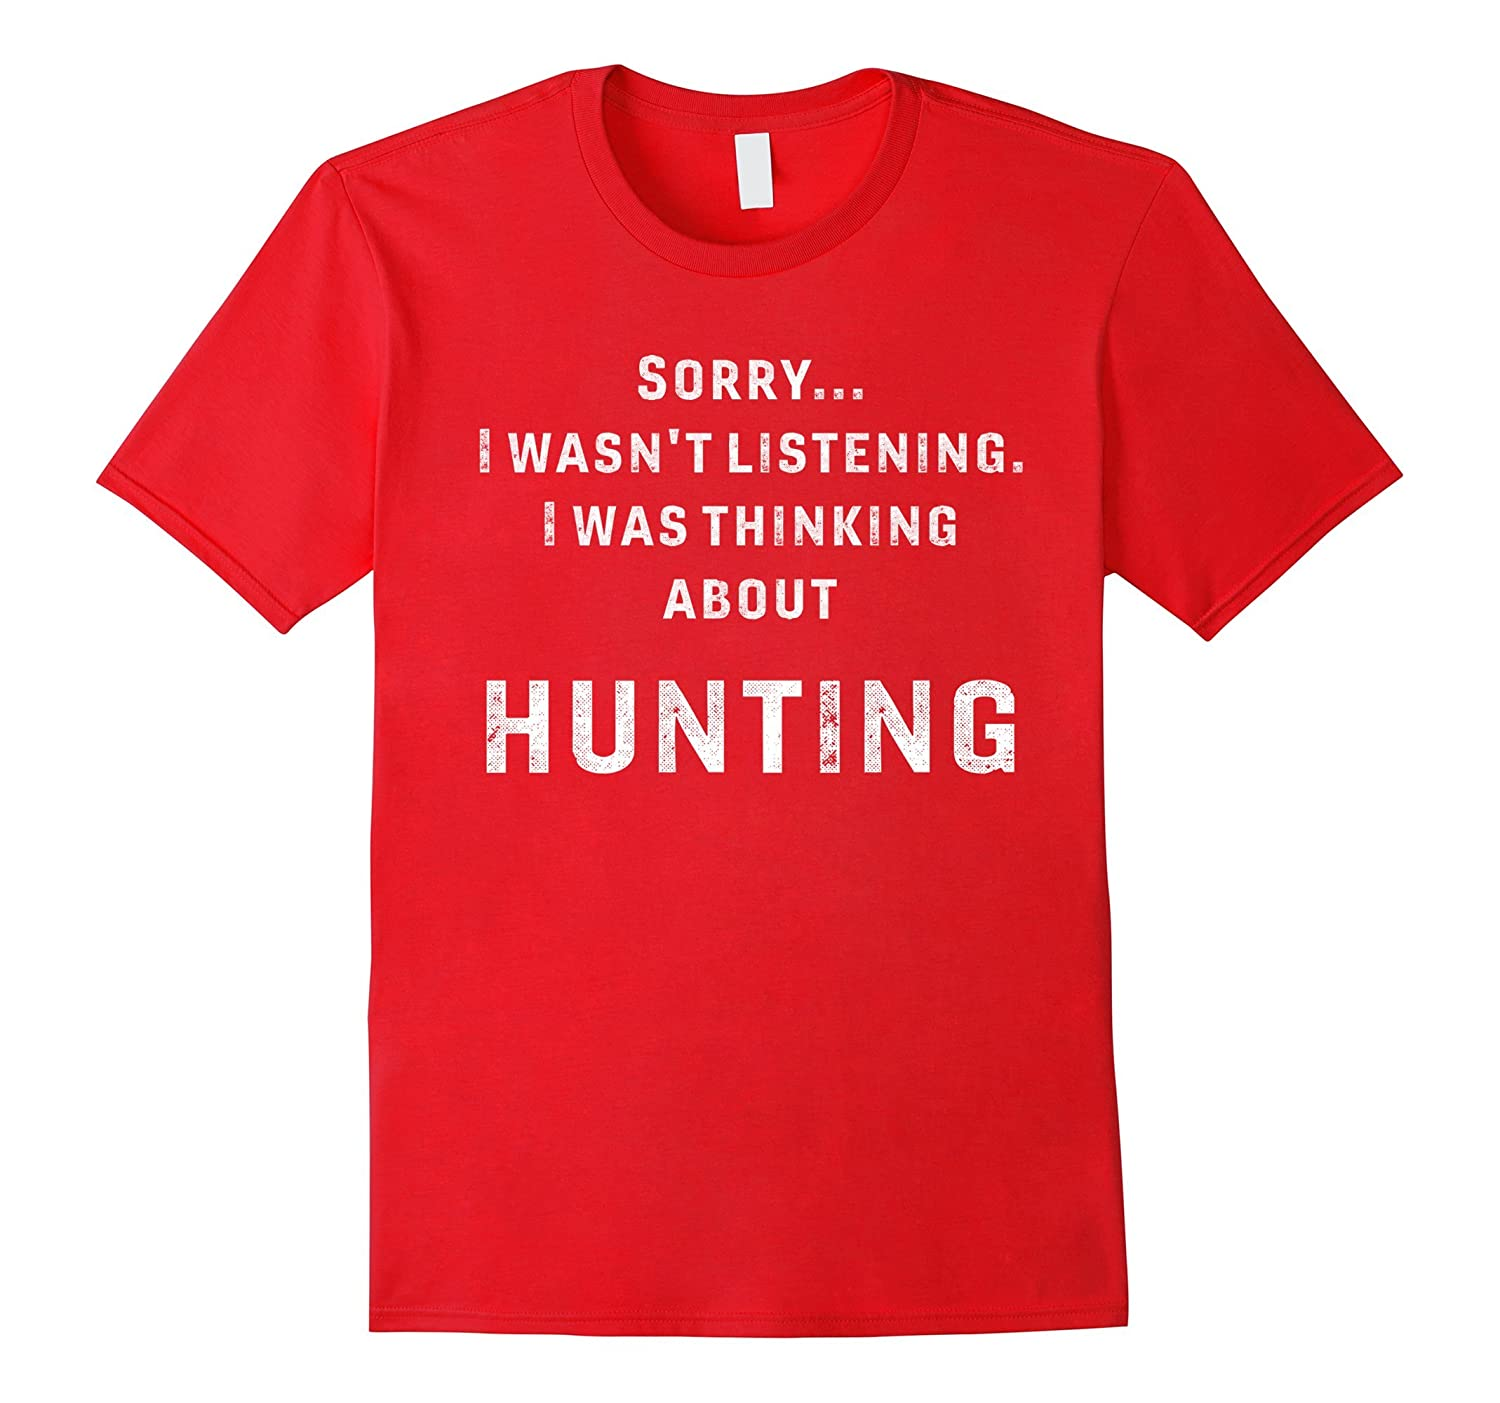 Hunting T Shirts. Gifts for Hunters Who Love to Hunt.-ANZ